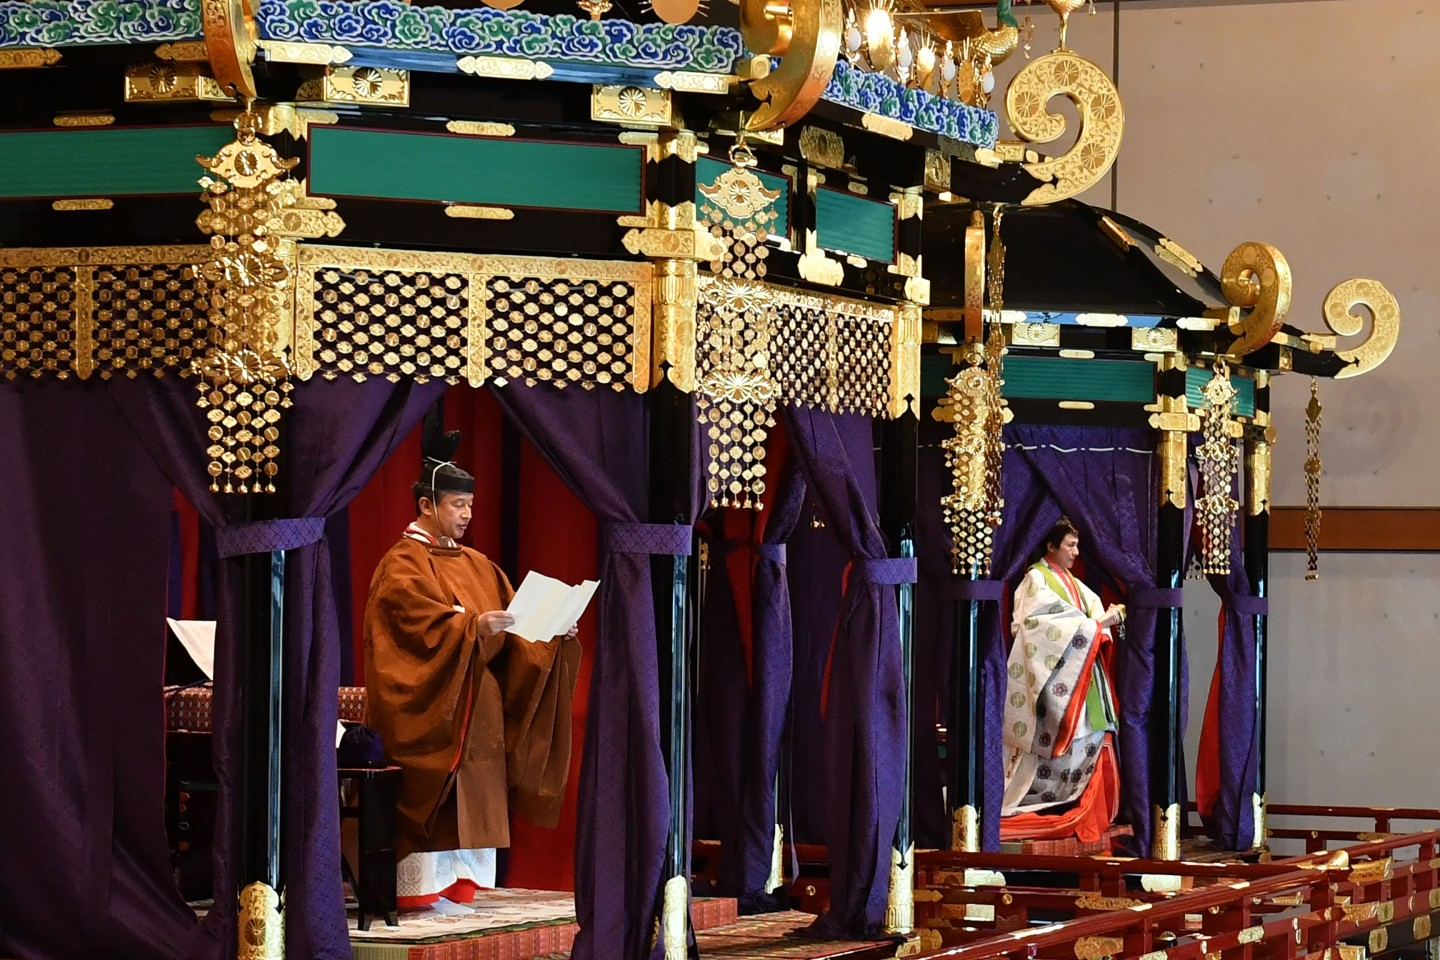 Emperor Naruhito (left) and Empress Masako (right) attend the enthronement ceremony where the emperor officially proclaims his ascension to the Chrysanthemum Throne at the Imperial Palace in Tokyo on October 22, 2019. (Kazuhiro Nogi/POOL/AFP)